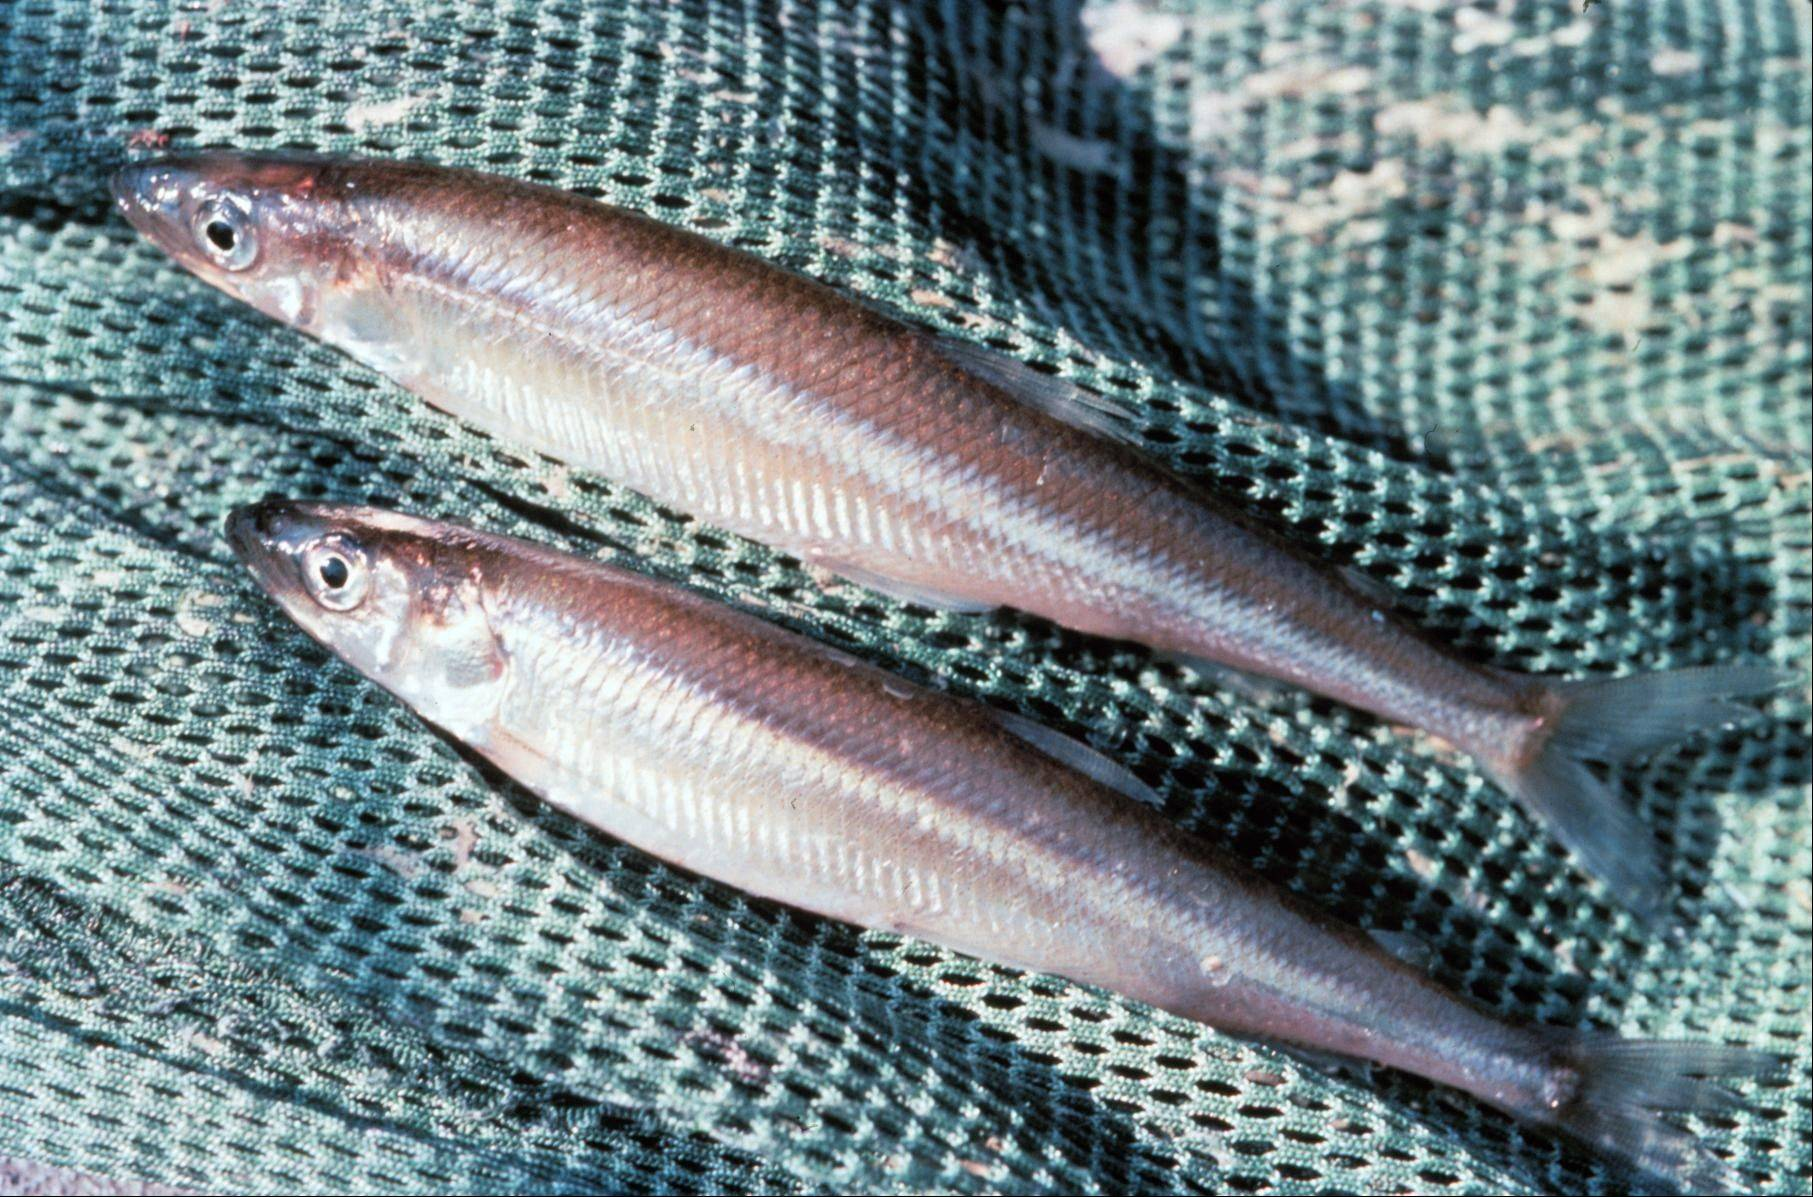 These smelt don't have as many brethren as they once did. The number of smelt in Lake Michigan has plummeted since the 1980s, when a carnival atmosphere surrounded the fishermen who came to the shore ever spring to catch the fish in nets.